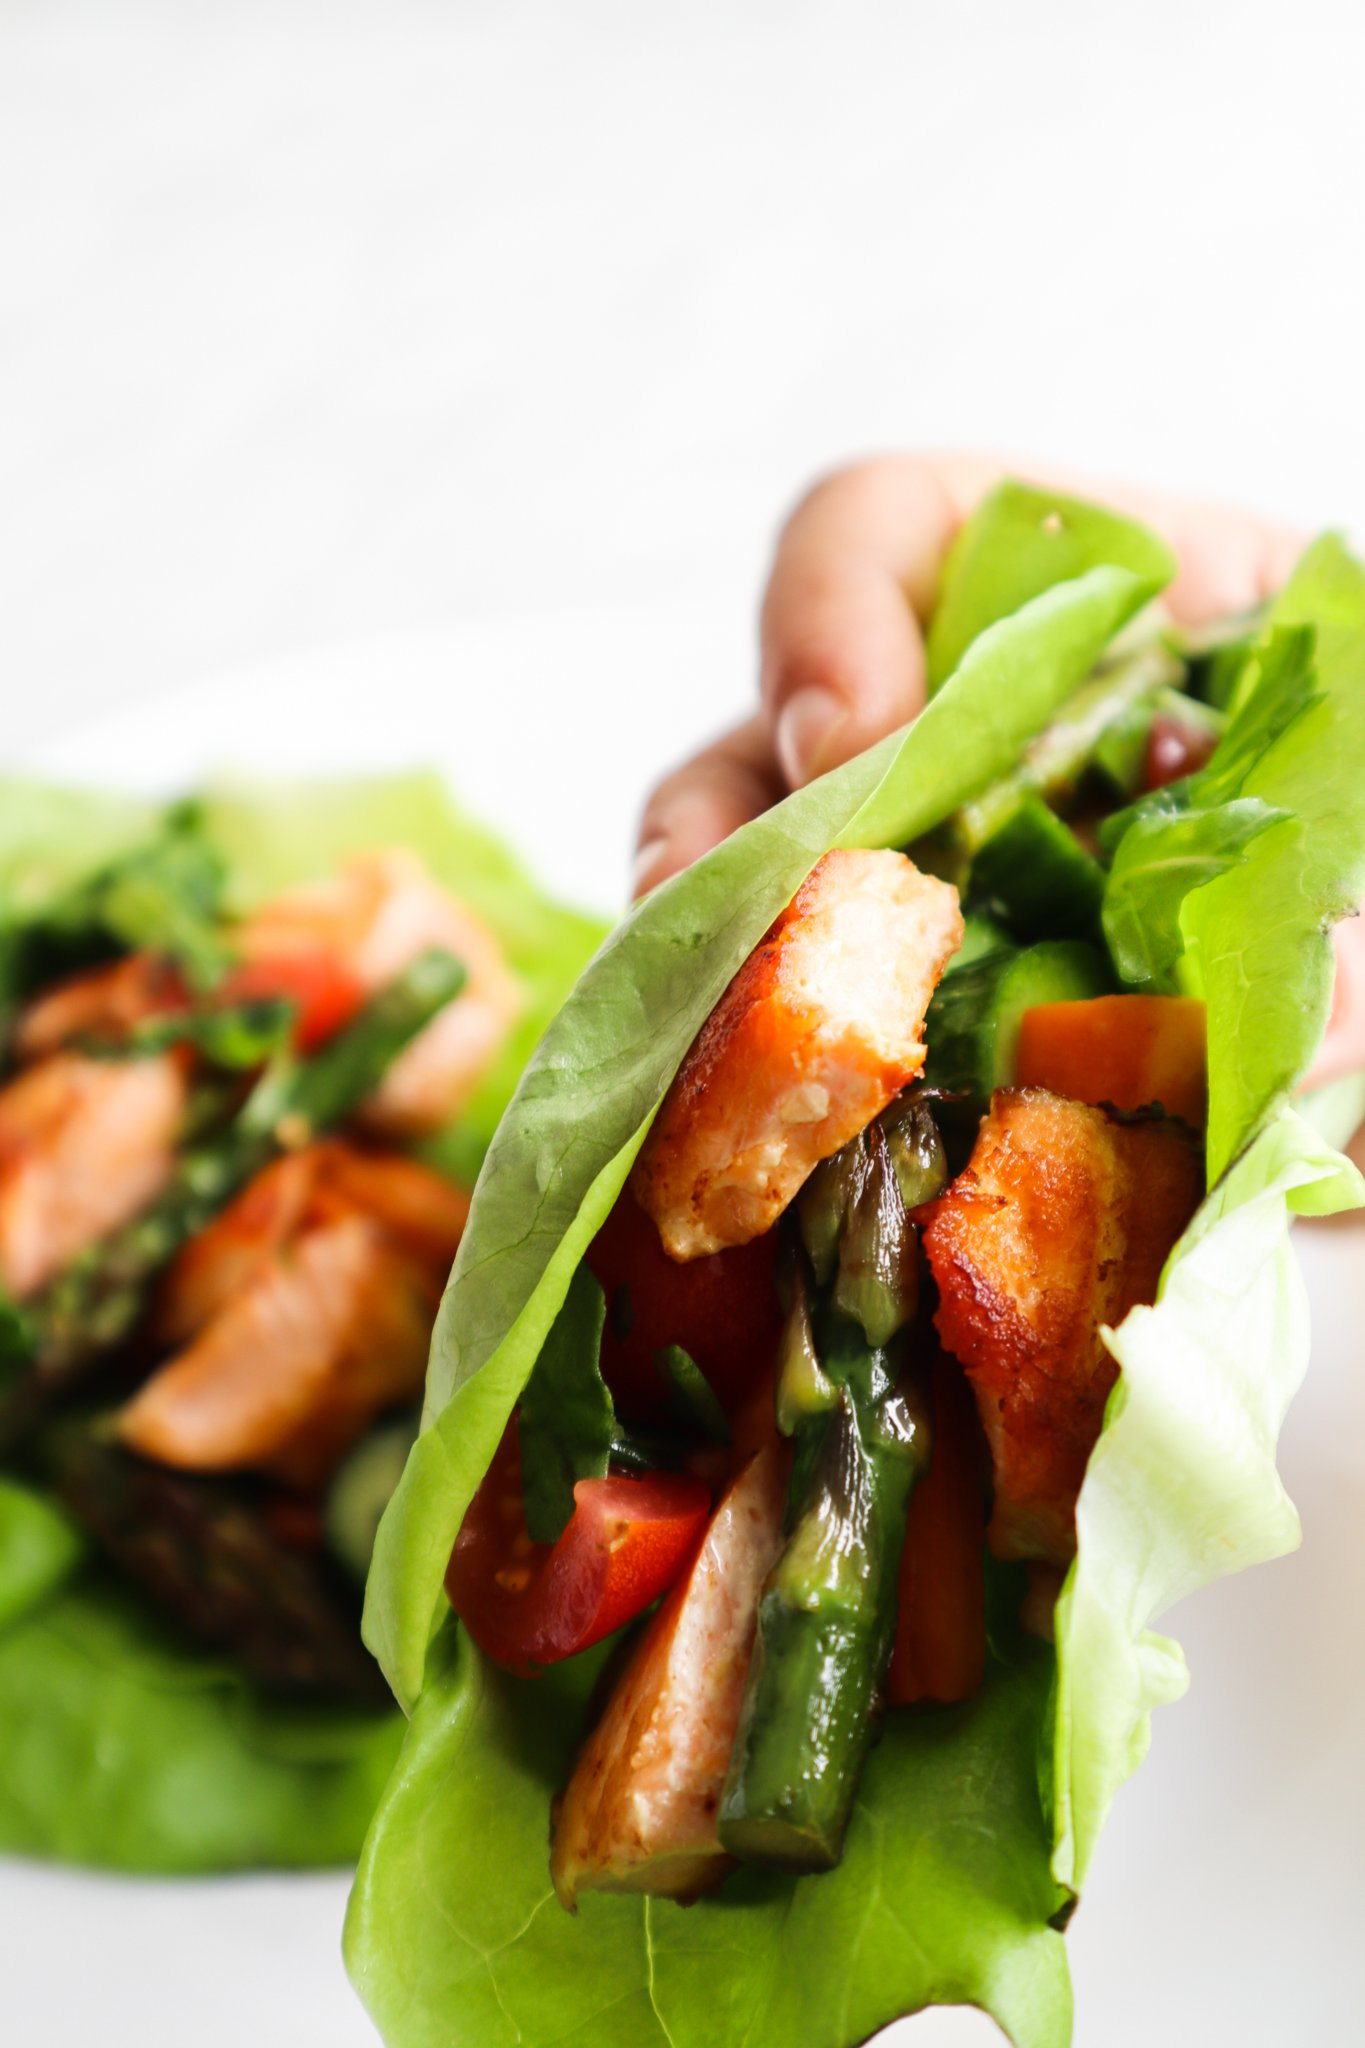 Healthy salmon lettuce wraps! This clean eating recipe is the perfect flavorful and delicious low carb dinner idea. Filled with salmon, pan-seared and fresh vegetables and a herby sunflower seed sauce, this is a great anti-inflammatory recipe that you'll want to do again and again if you're following an anti-inflammatory diet